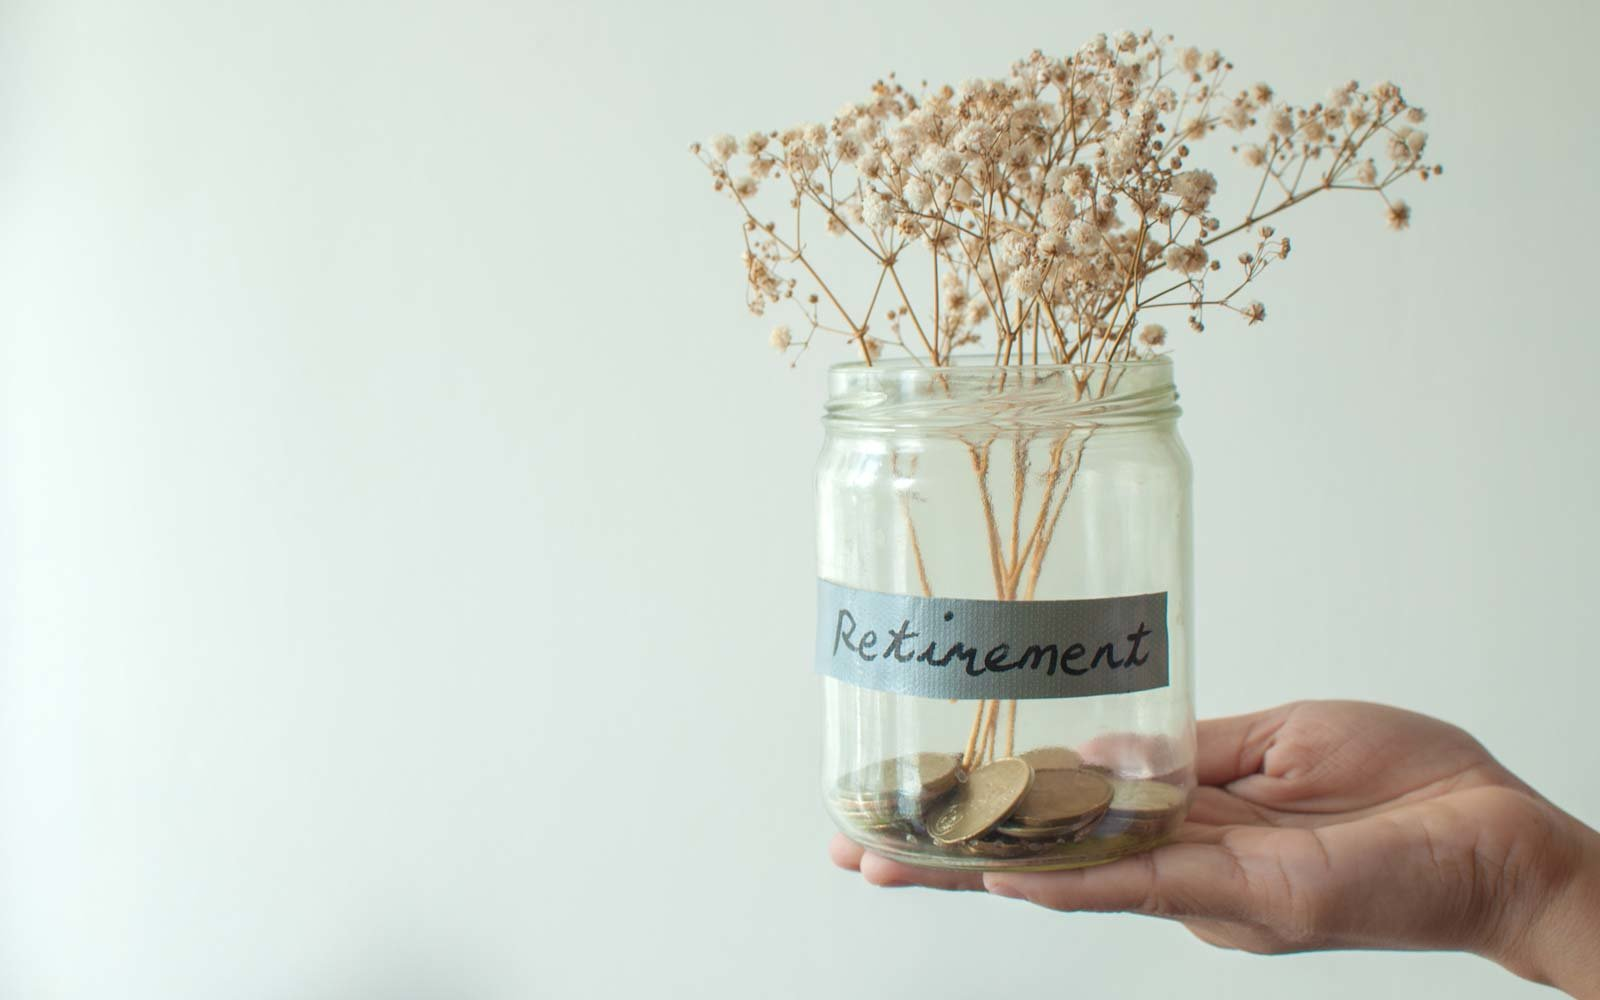 A retirement concept jar with coins and dried plant